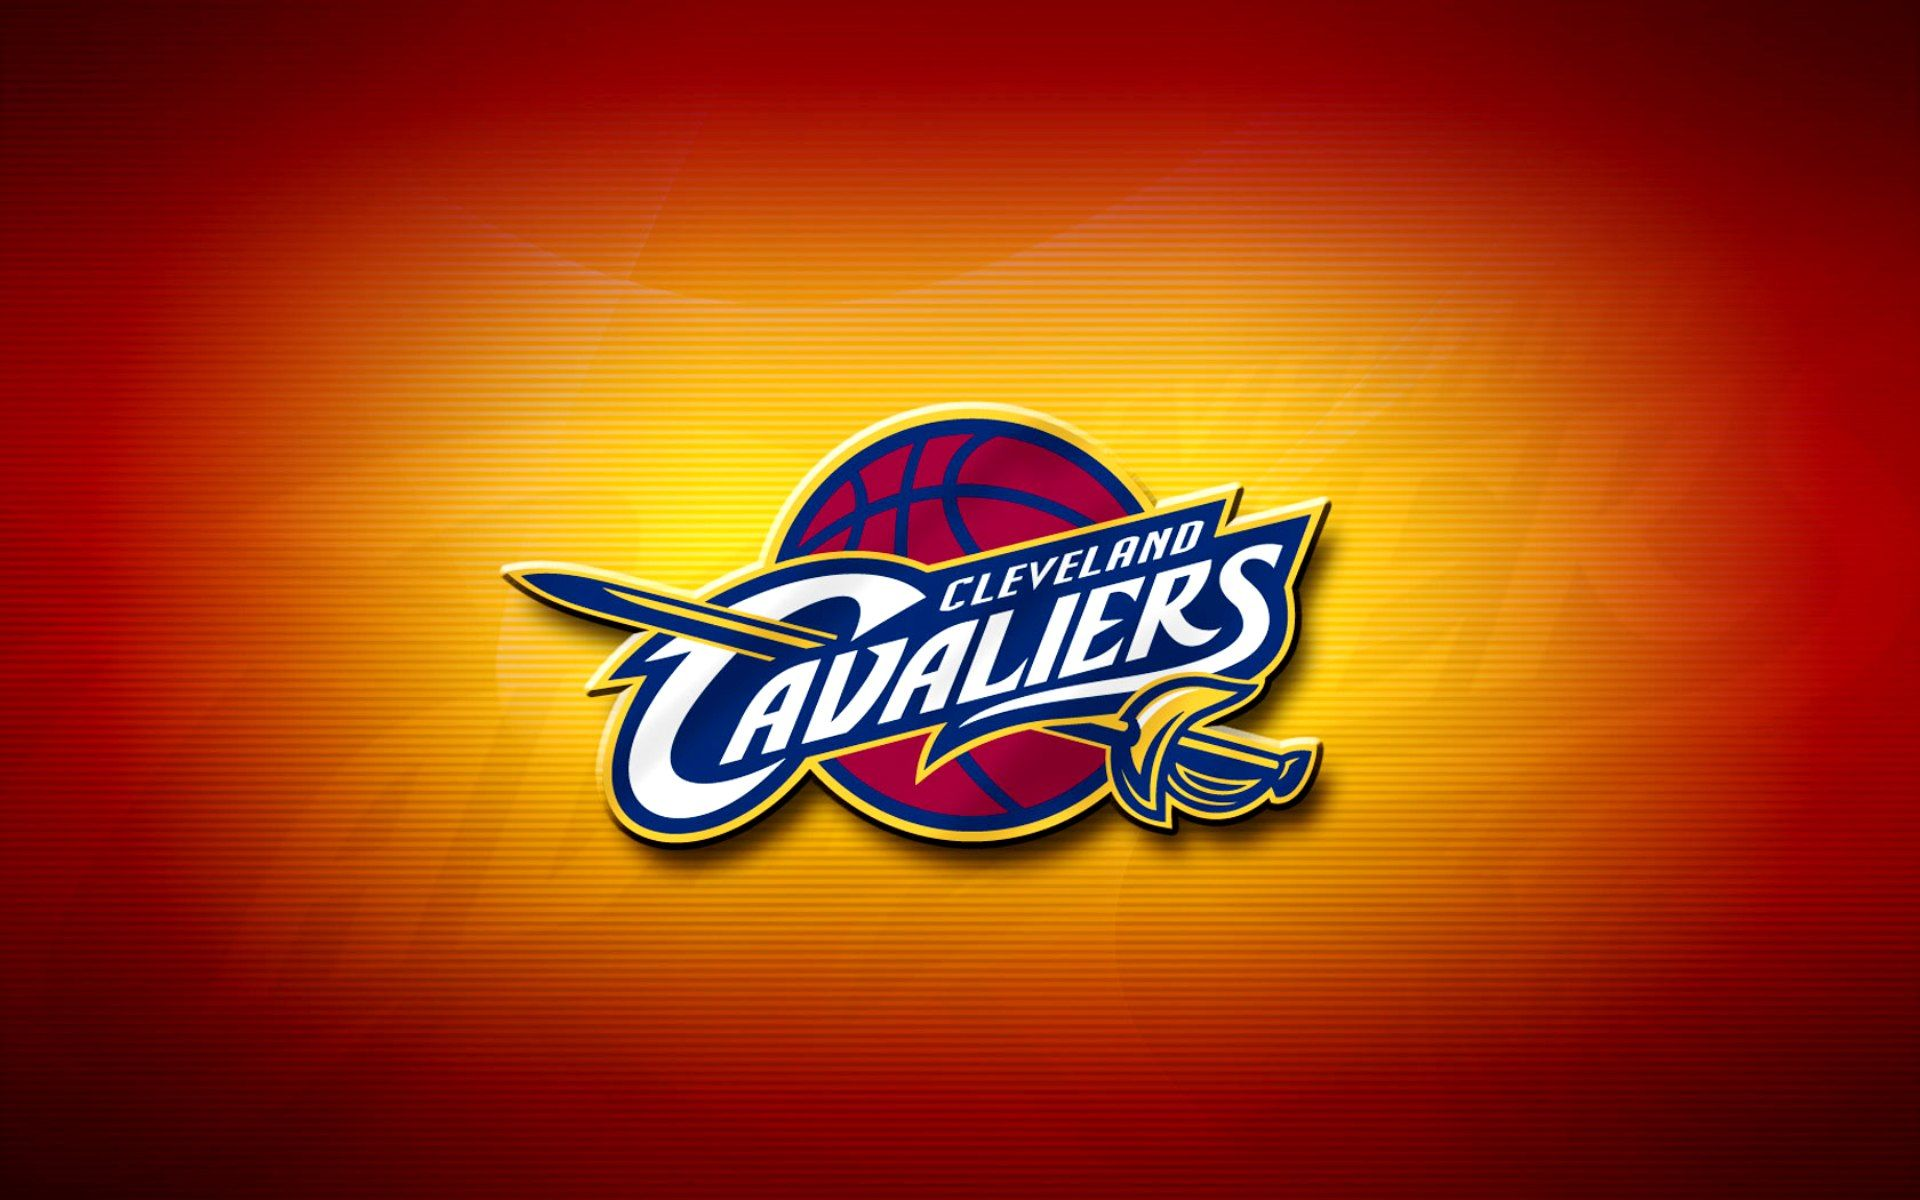 Cleveland Cavaliers Logo Wallpaper Basketball Team NBA to Days 1920x1200